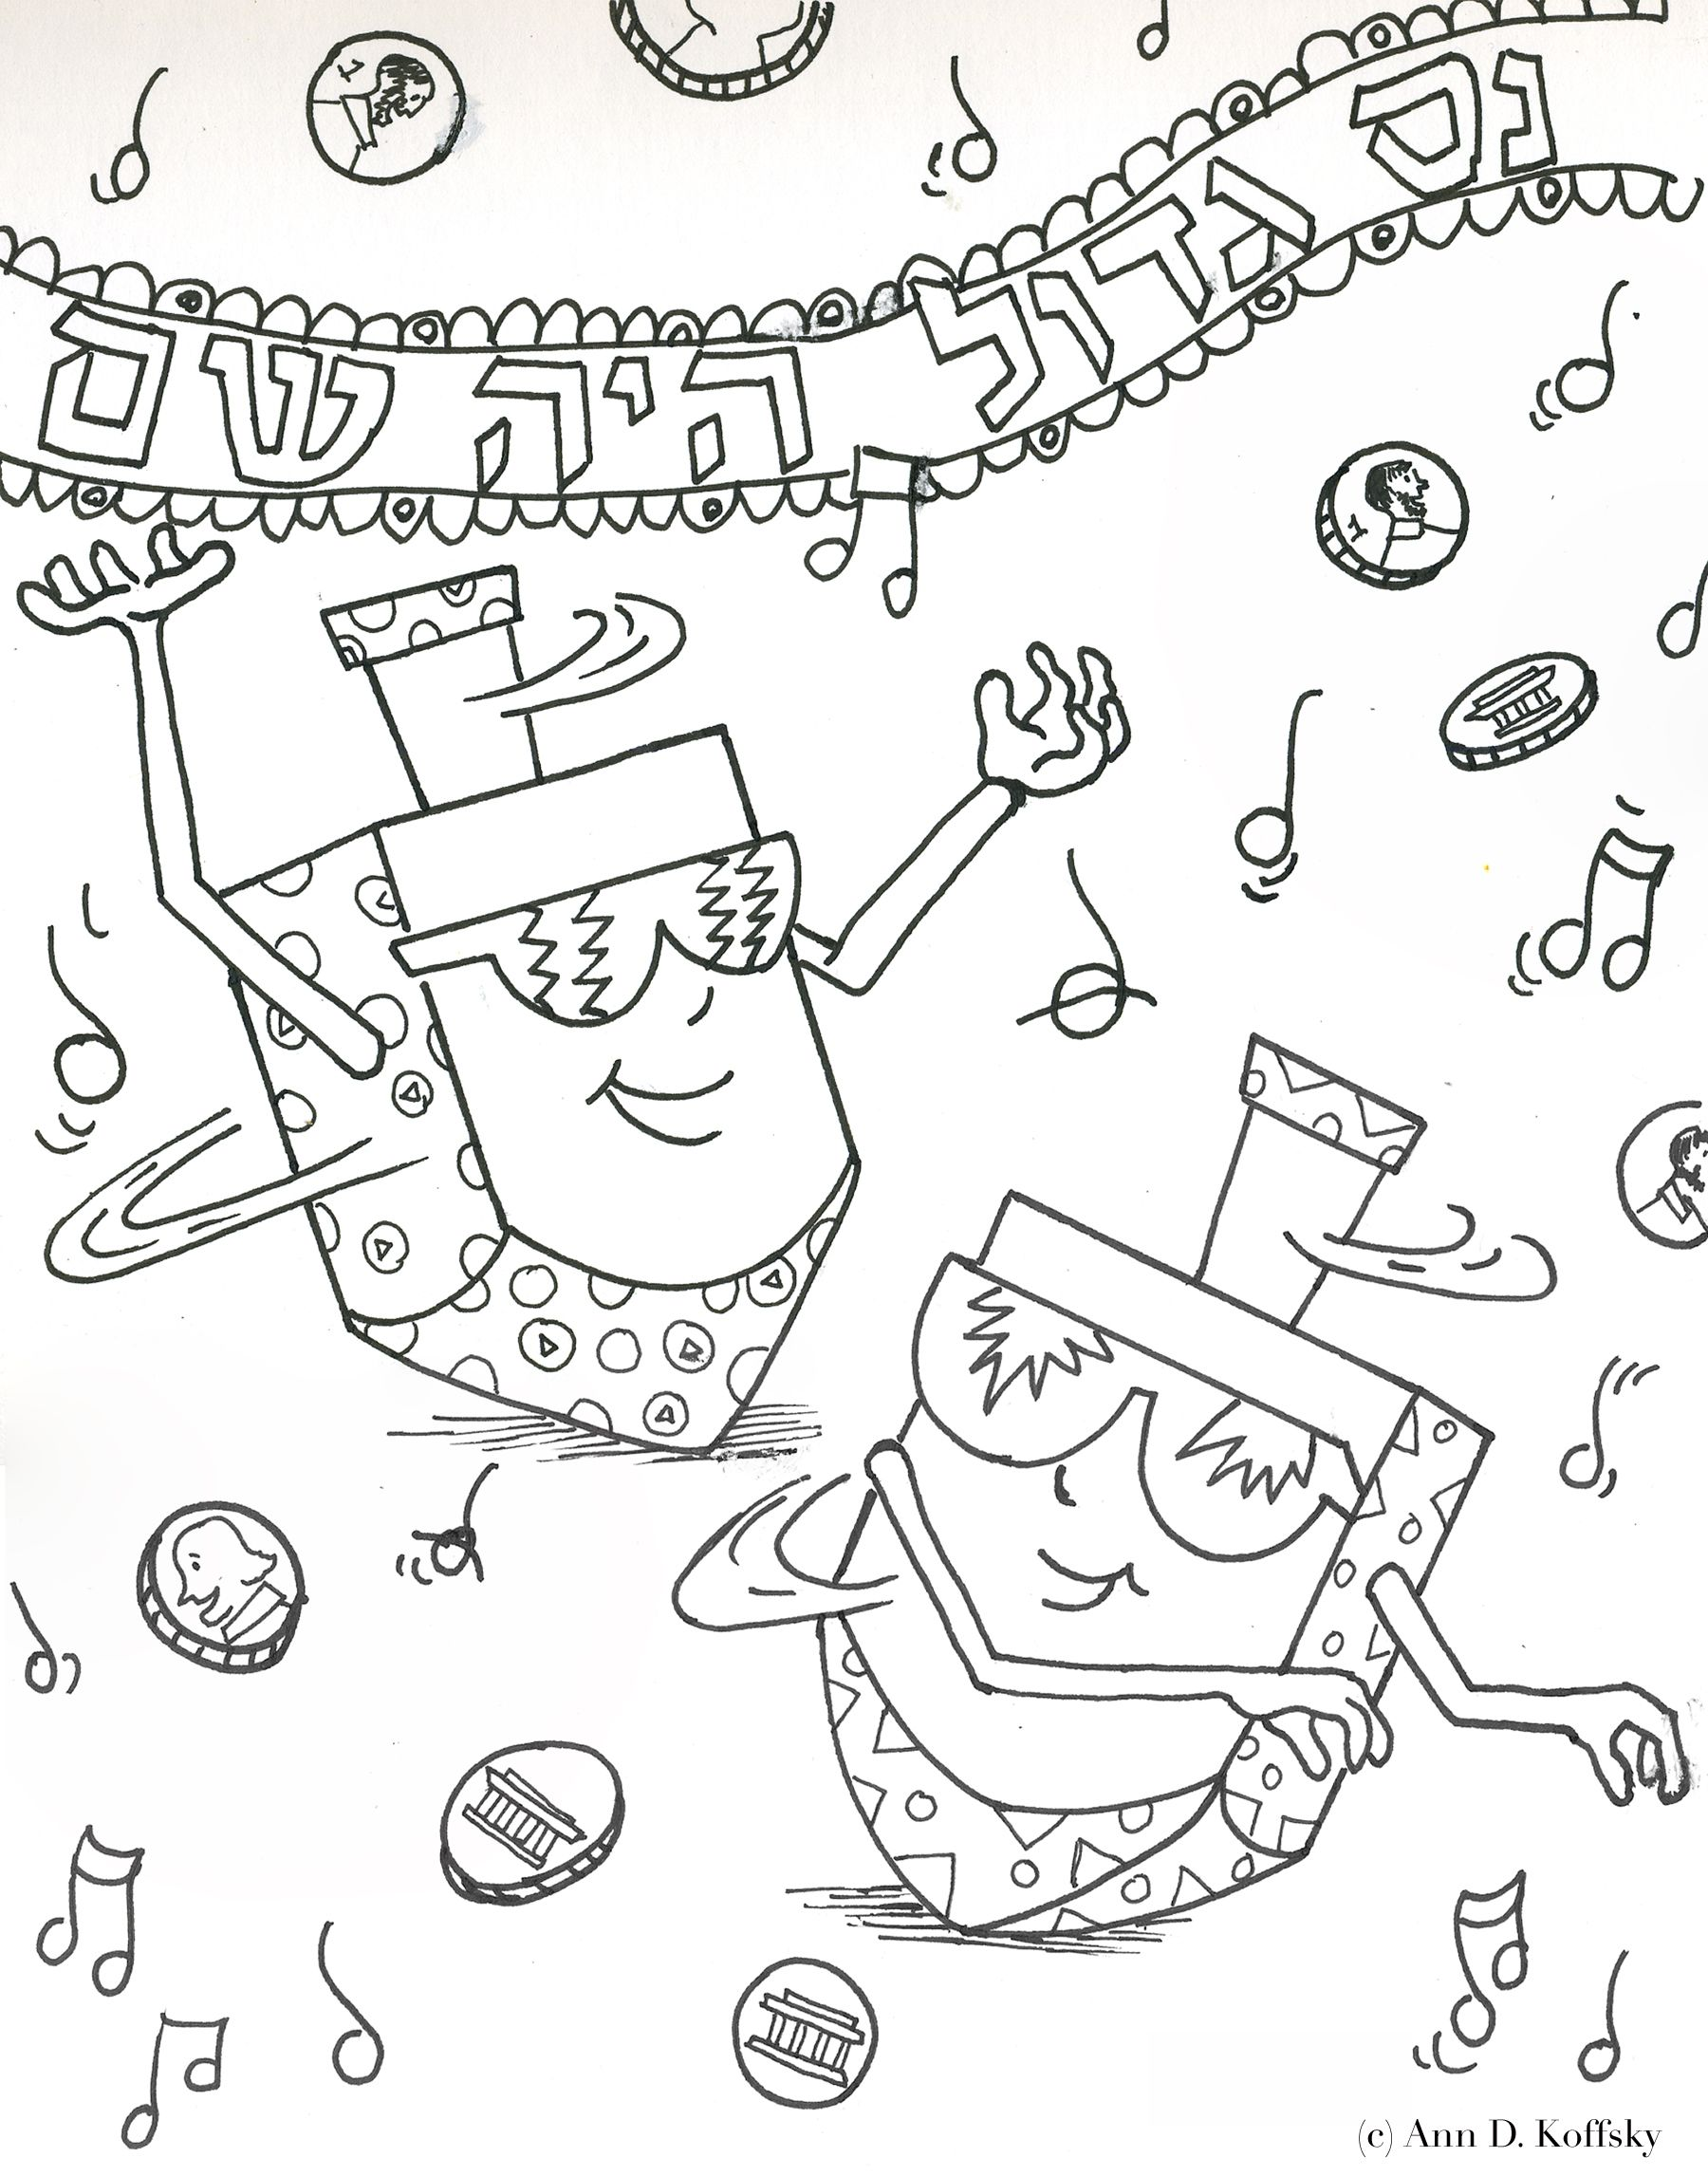 Lots of cute coloring pages for Hannukah, Passover, Purim